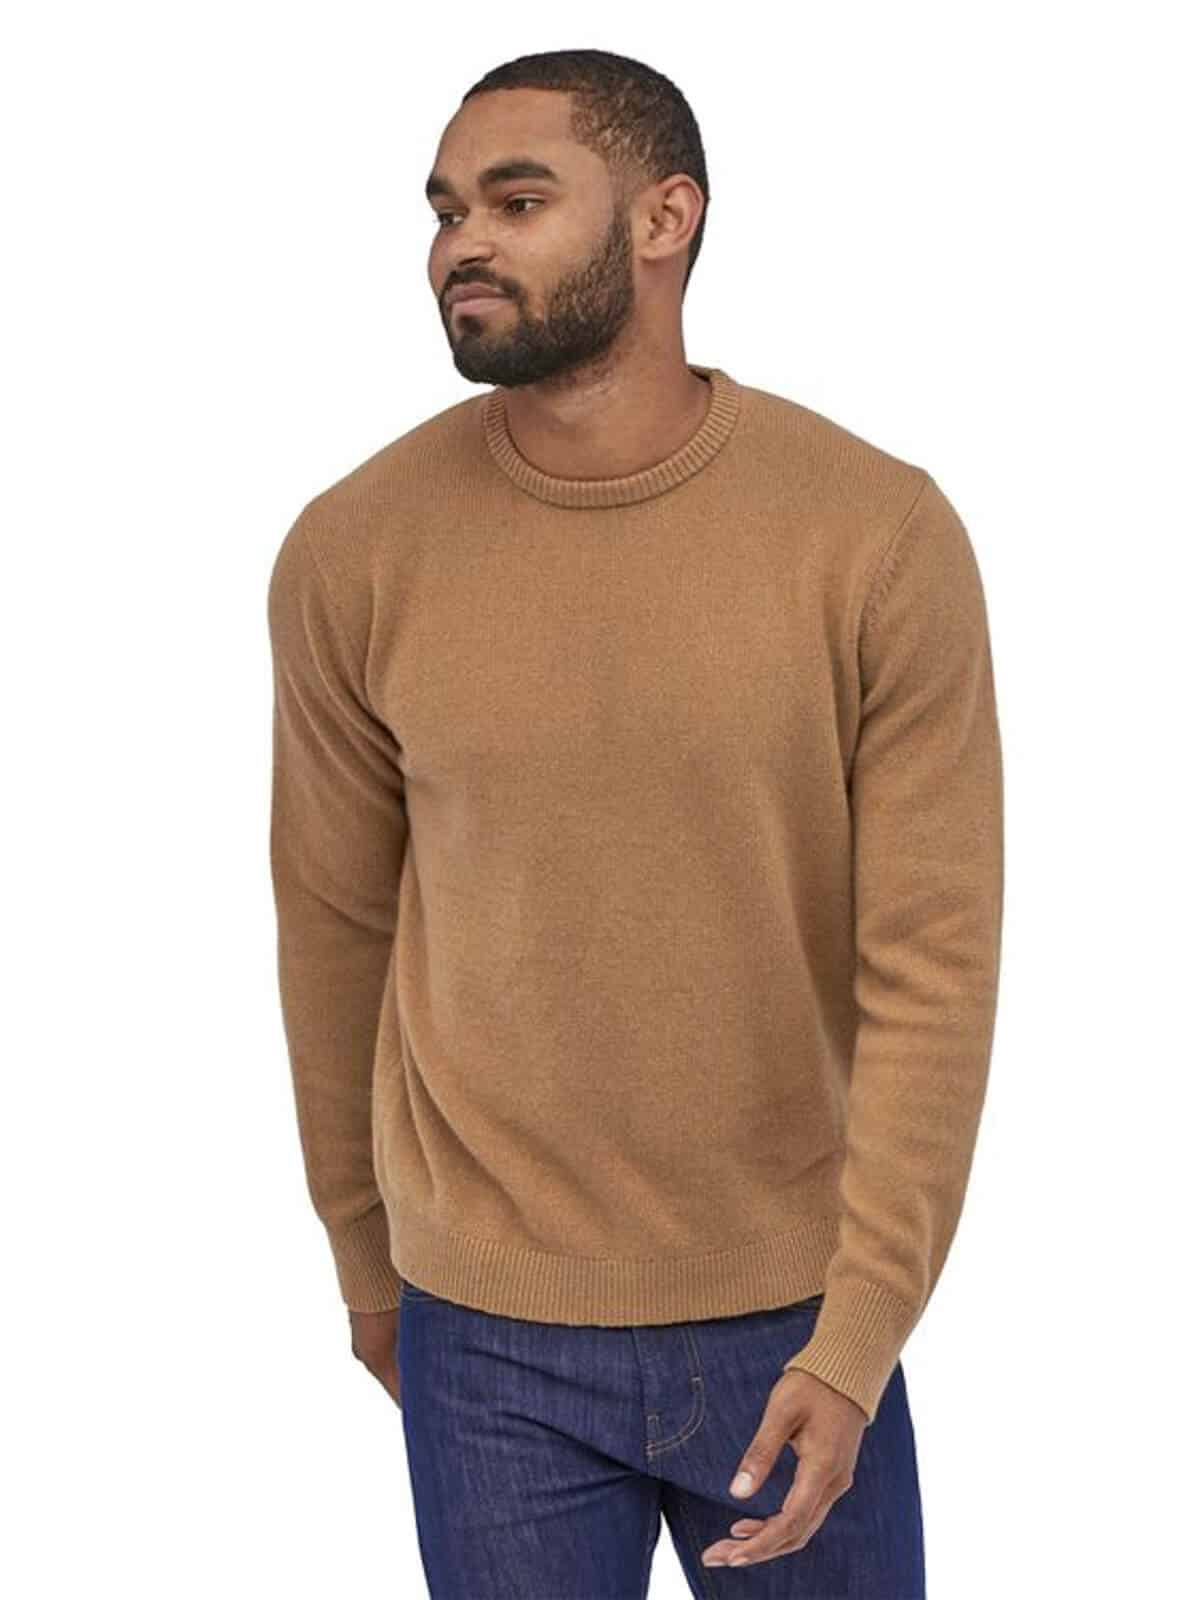 Person wearing a beige sweater and blue jeans.